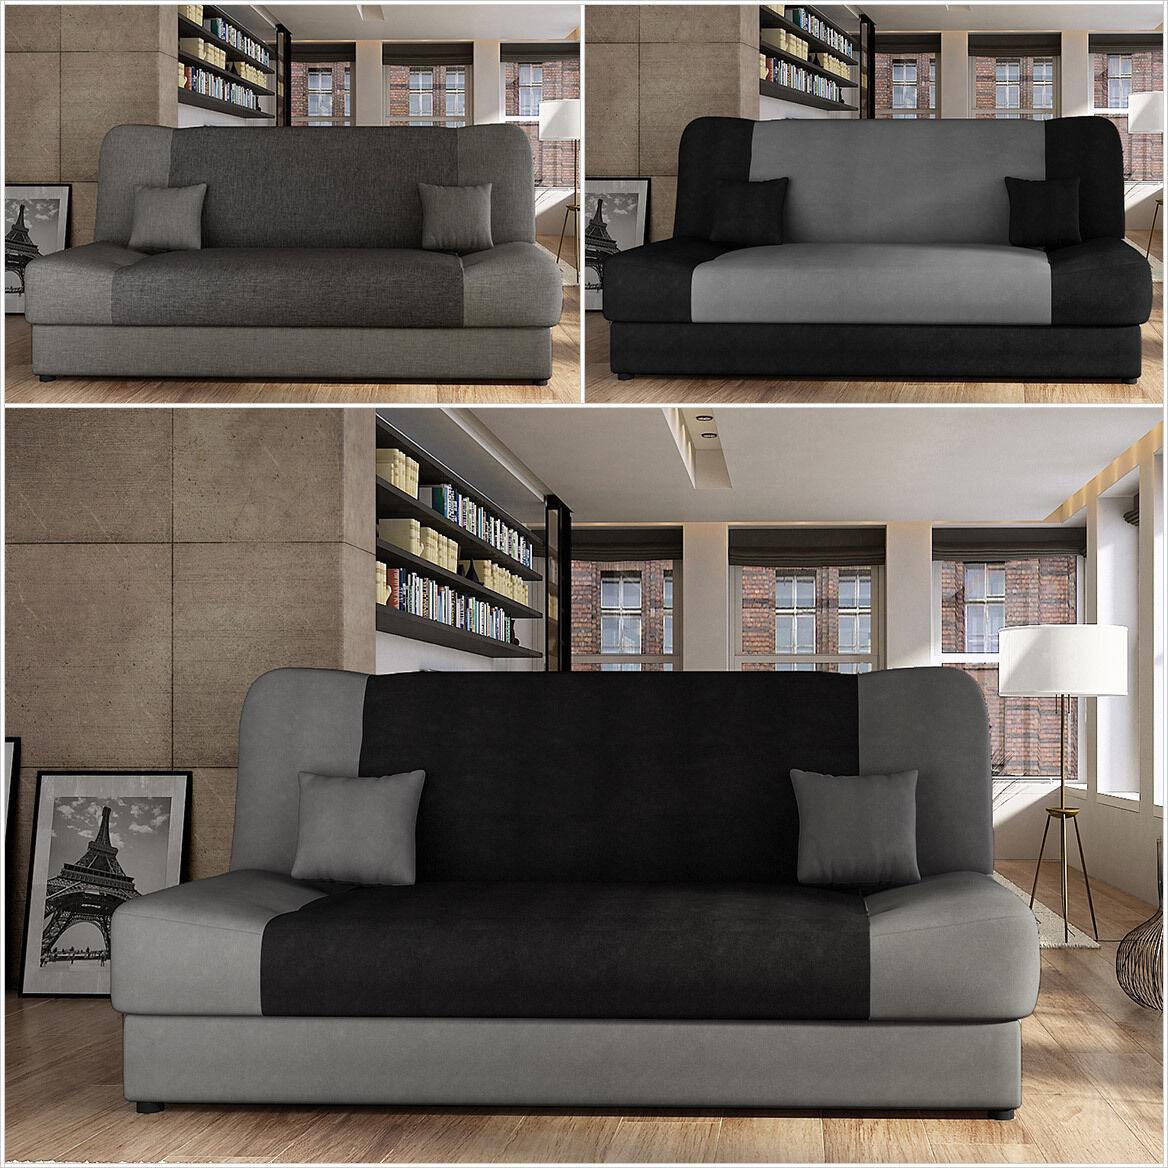 schlafsofa nella sofa couch schlafcouch wohnlundschaft mit. Black Bedroom Furniture Sets. Home Design Ideas